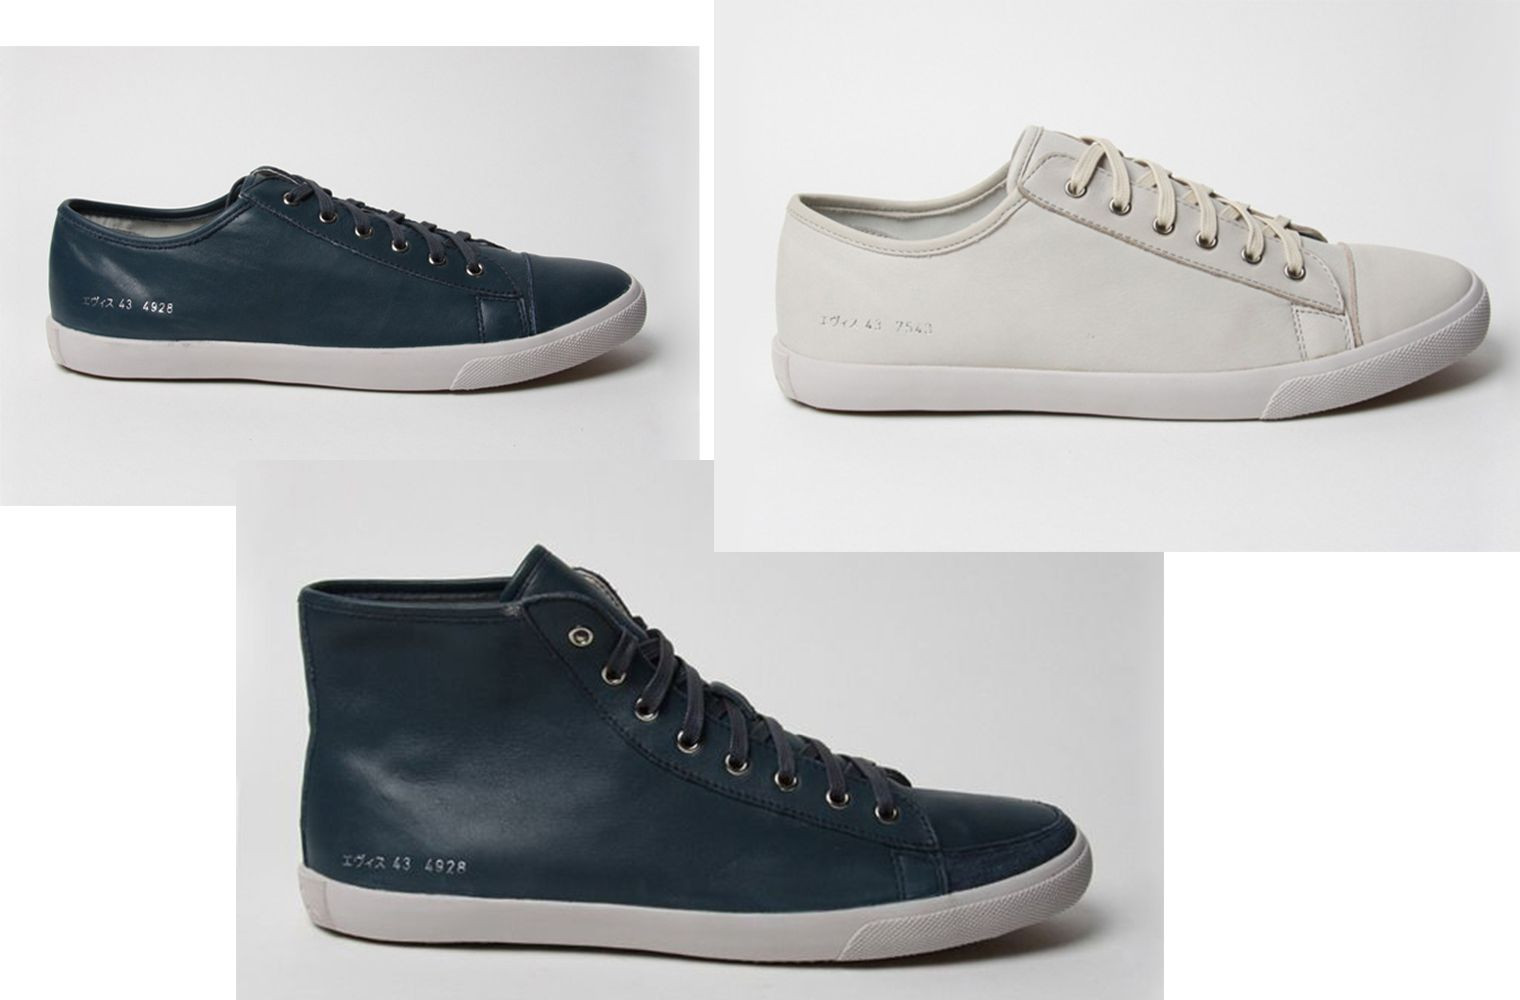 EVISU x Common Projects Fall/Winter 2010